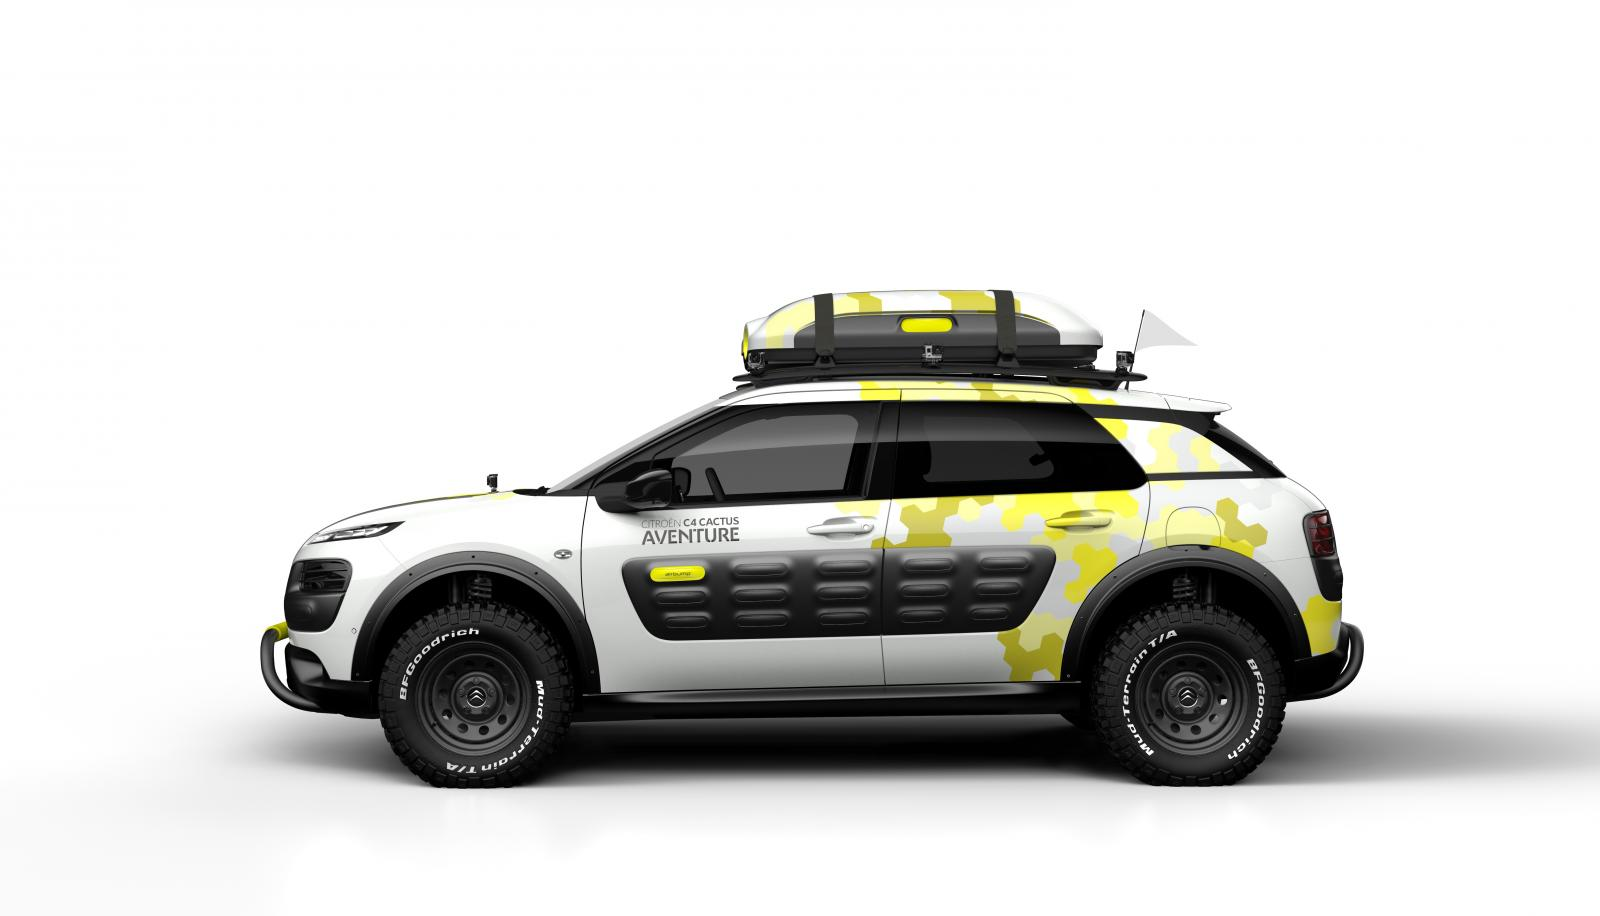 Concept-car C4 Cactus Adventure 2014